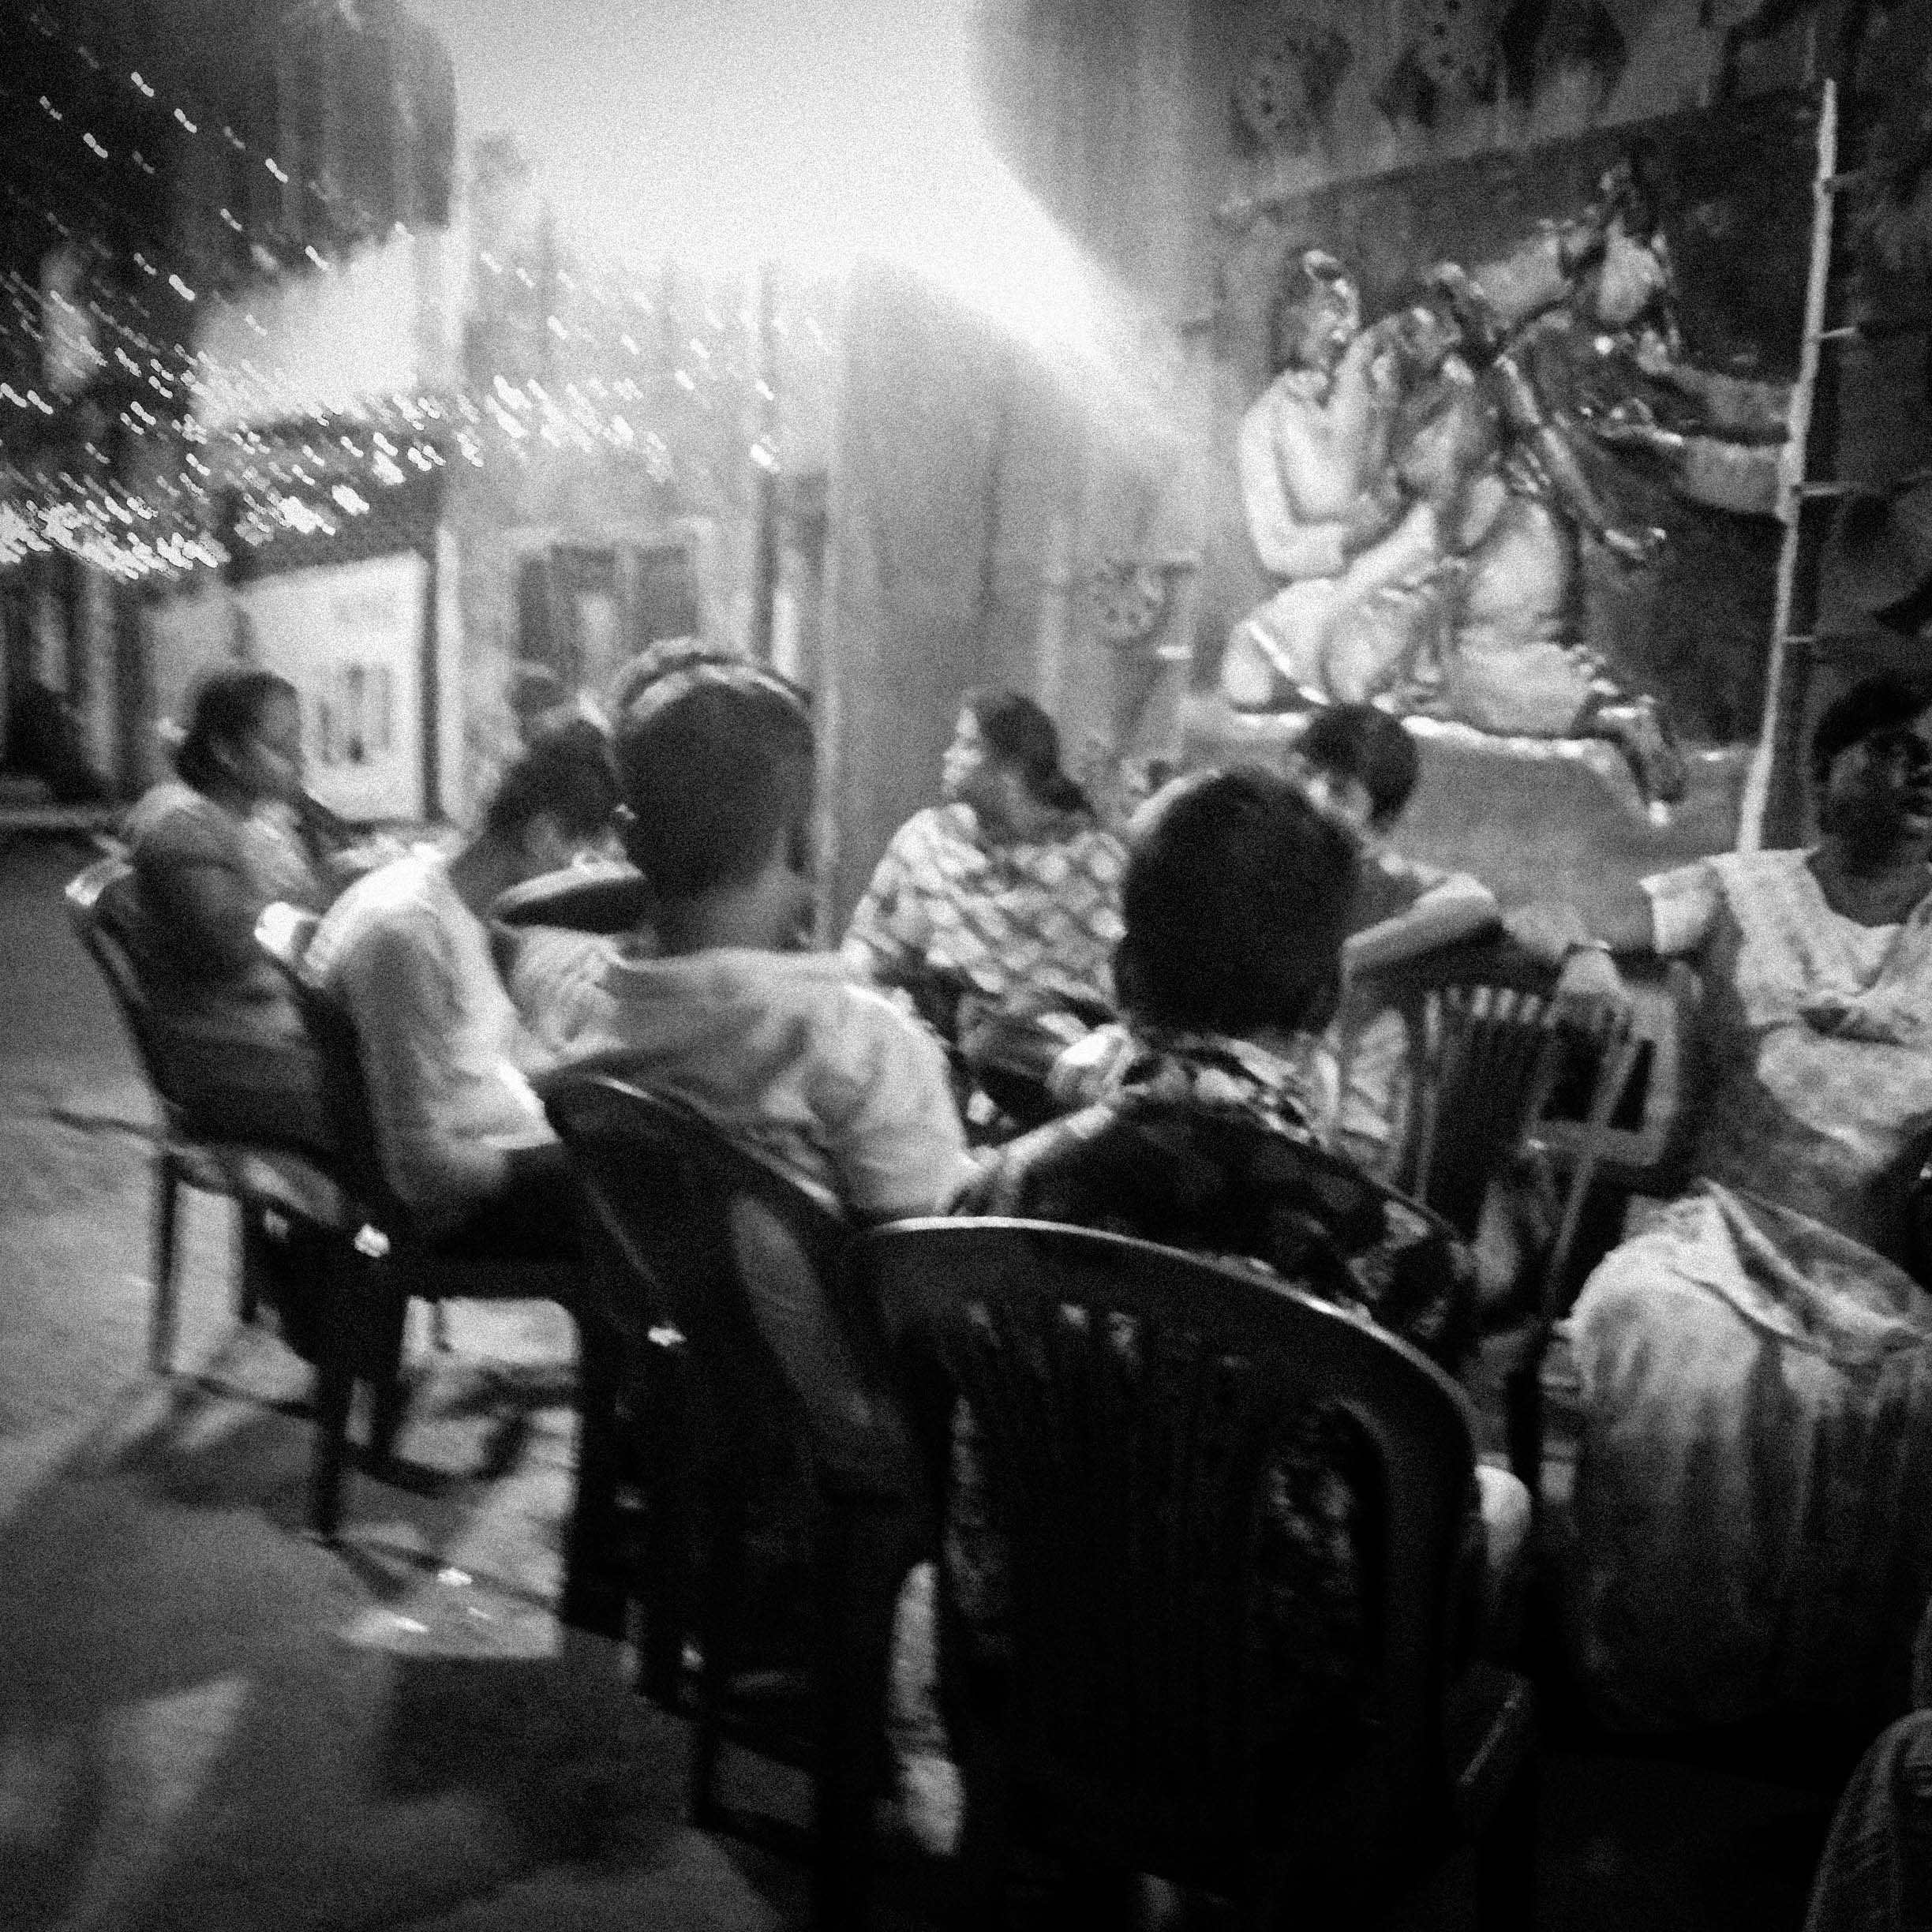 Well past midnight, as we walk around the art panels and chat, members of the community are warm and relaxed. They admire our clothes, gazing keenly and dispensing friendly smiles while trying to gauge the tenor of our interest. The ambience in this pandal stands them apart from most community puja pandals one may walk through in the city; we remark on this as they give us directions to another puja in the neighbourhood we want to visit, and cheerfully quarrel among themselves about the shorter route there with less kharap lok (bad people).